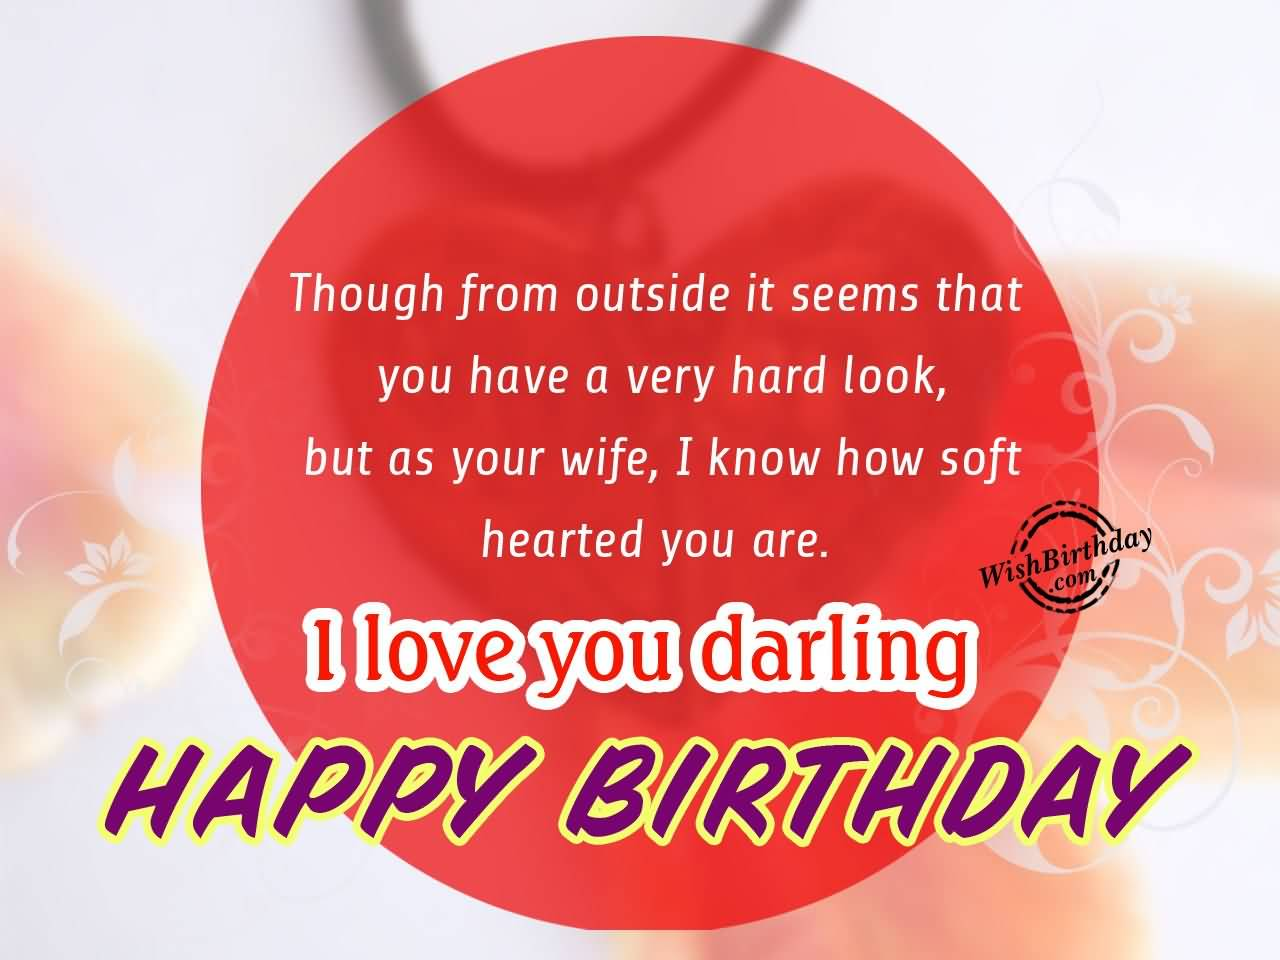 Though From Outside It Seems Happy Birthday Images For Husband Free Download